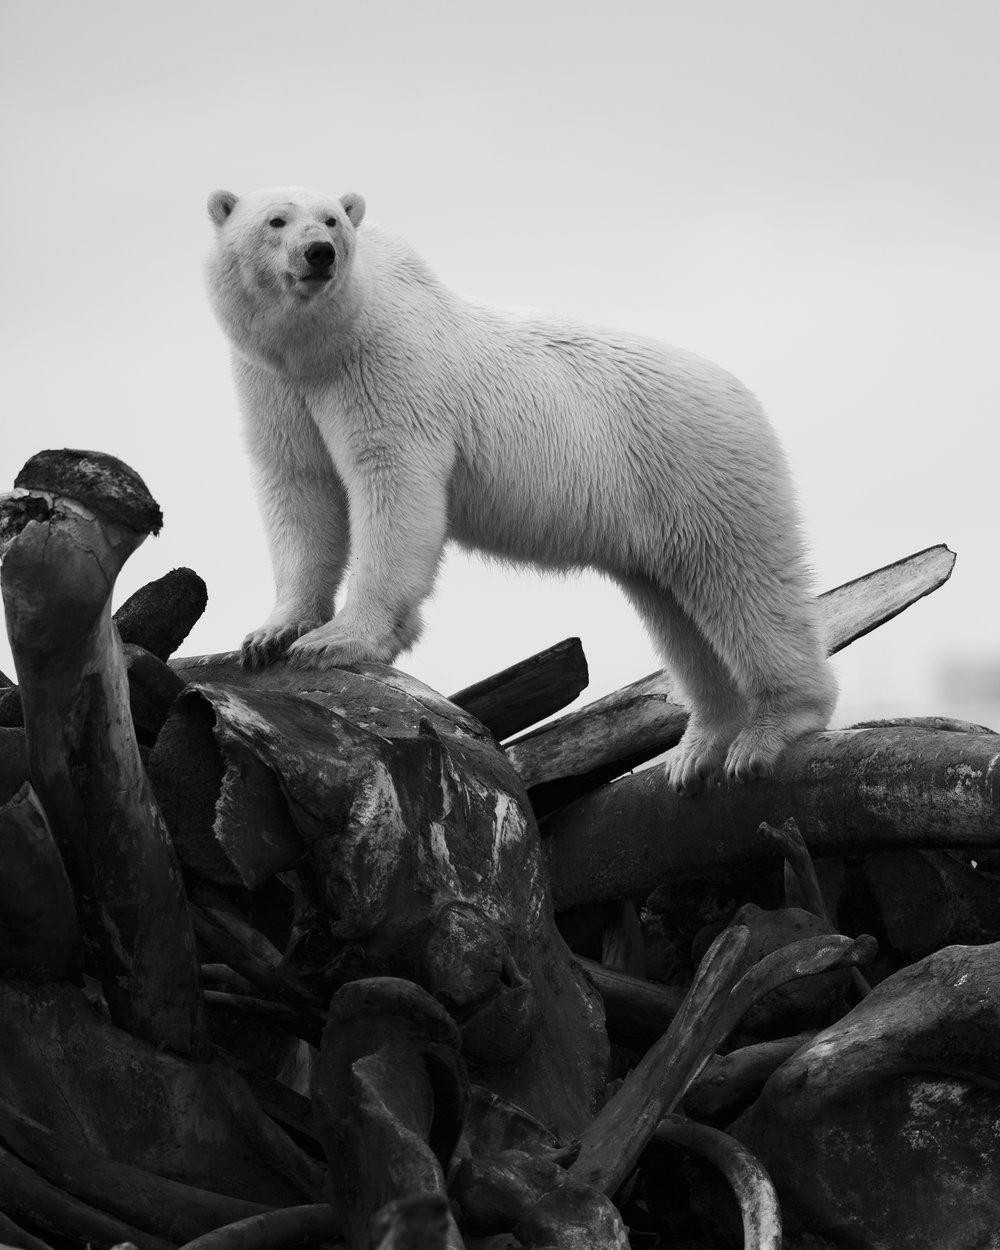 Adolescent Polar Bear on Whale Bones